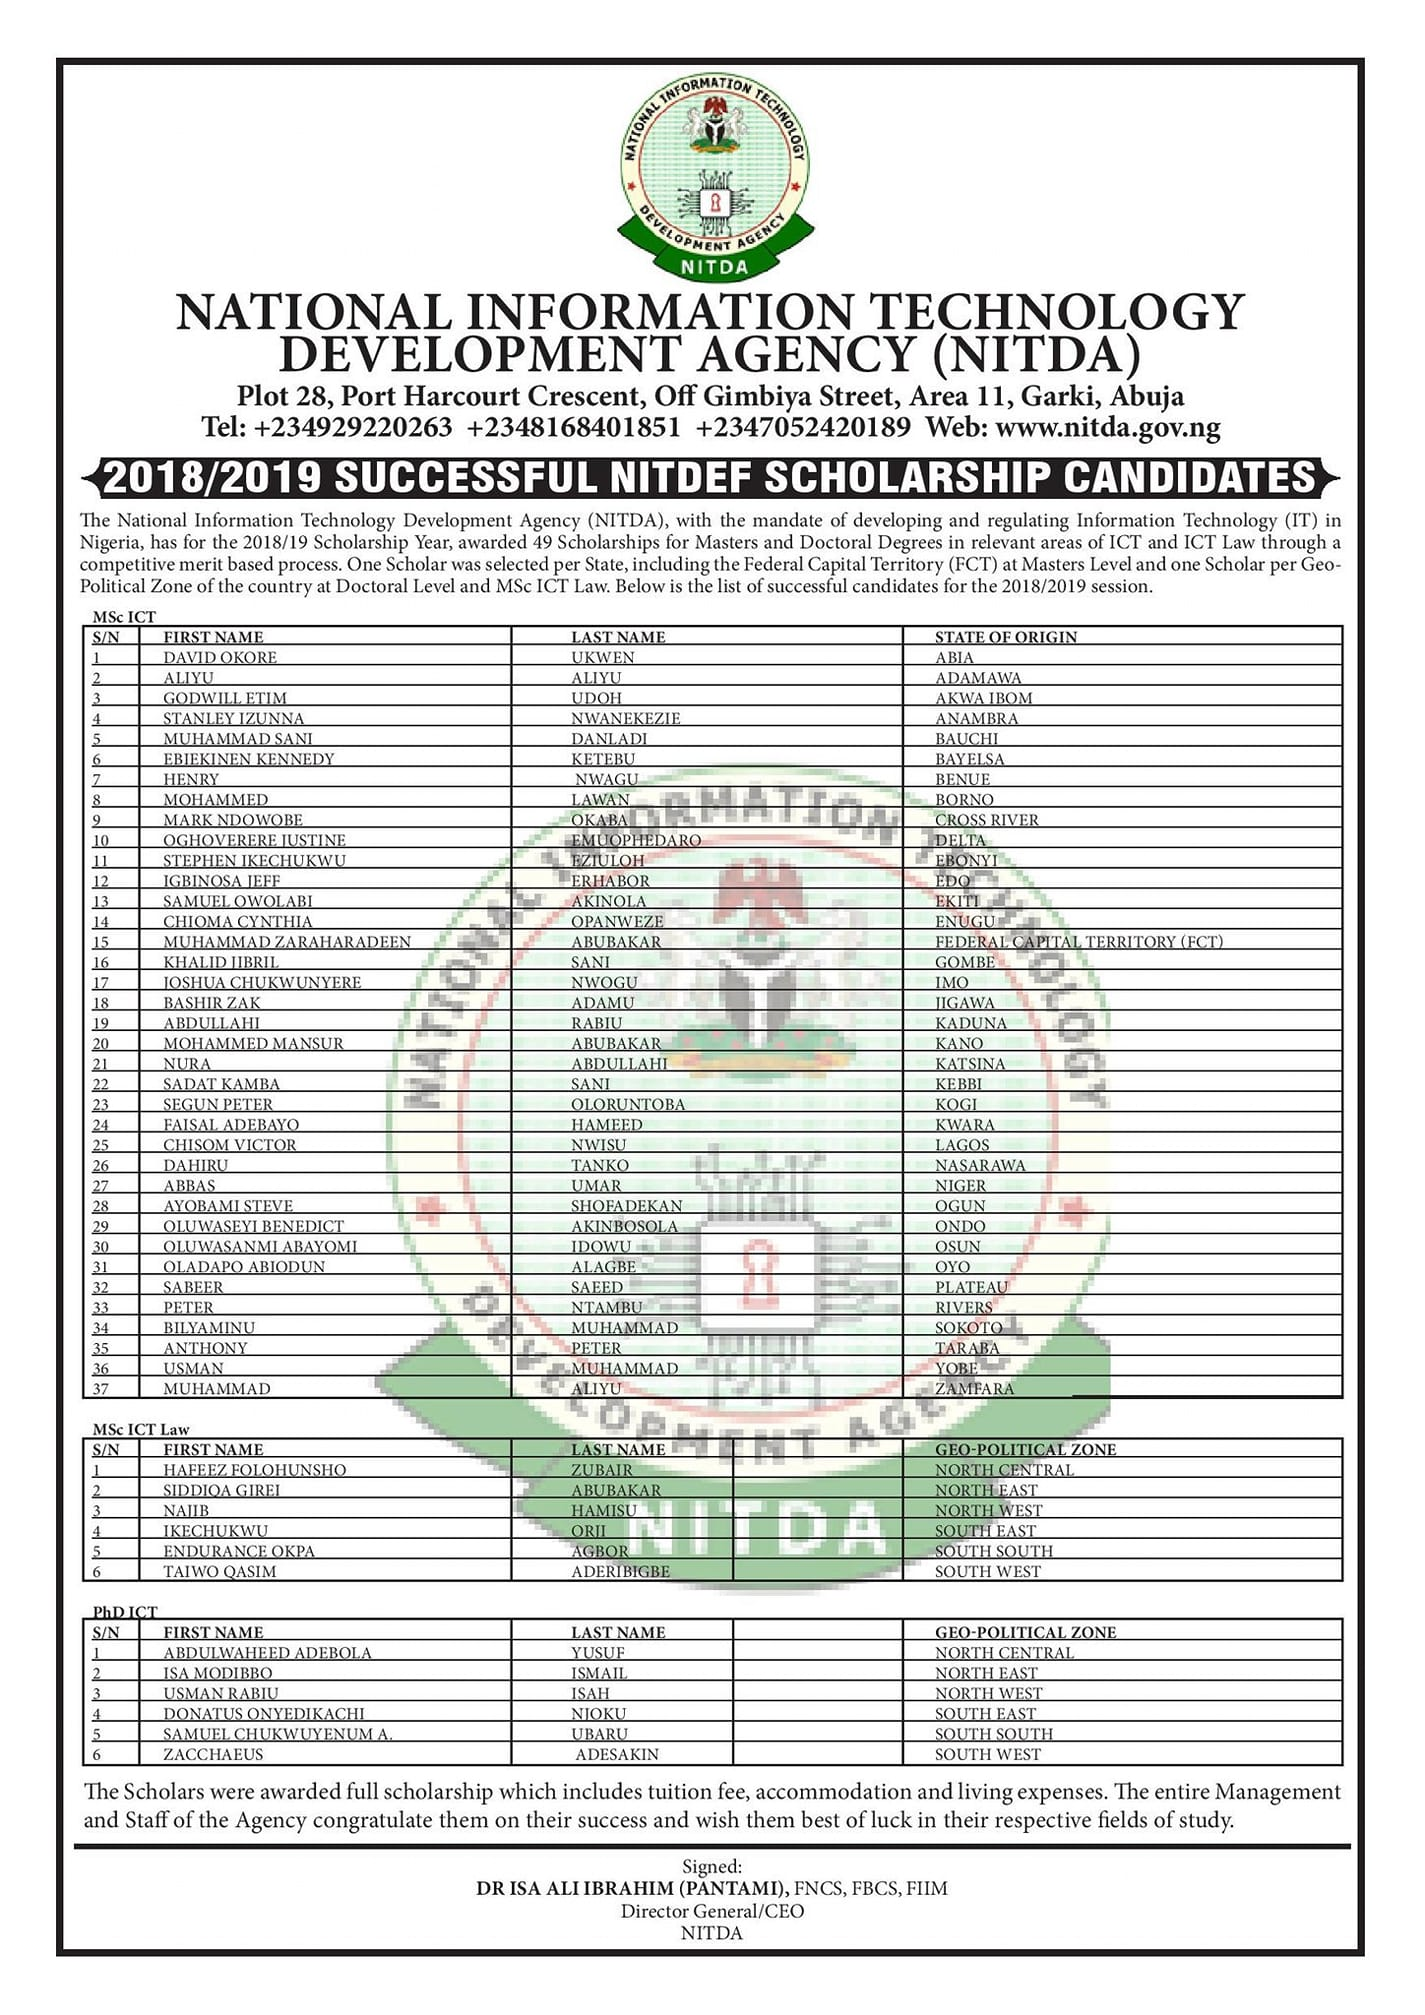 NITDA's 2018 2019 Successful Scholarship Candidates